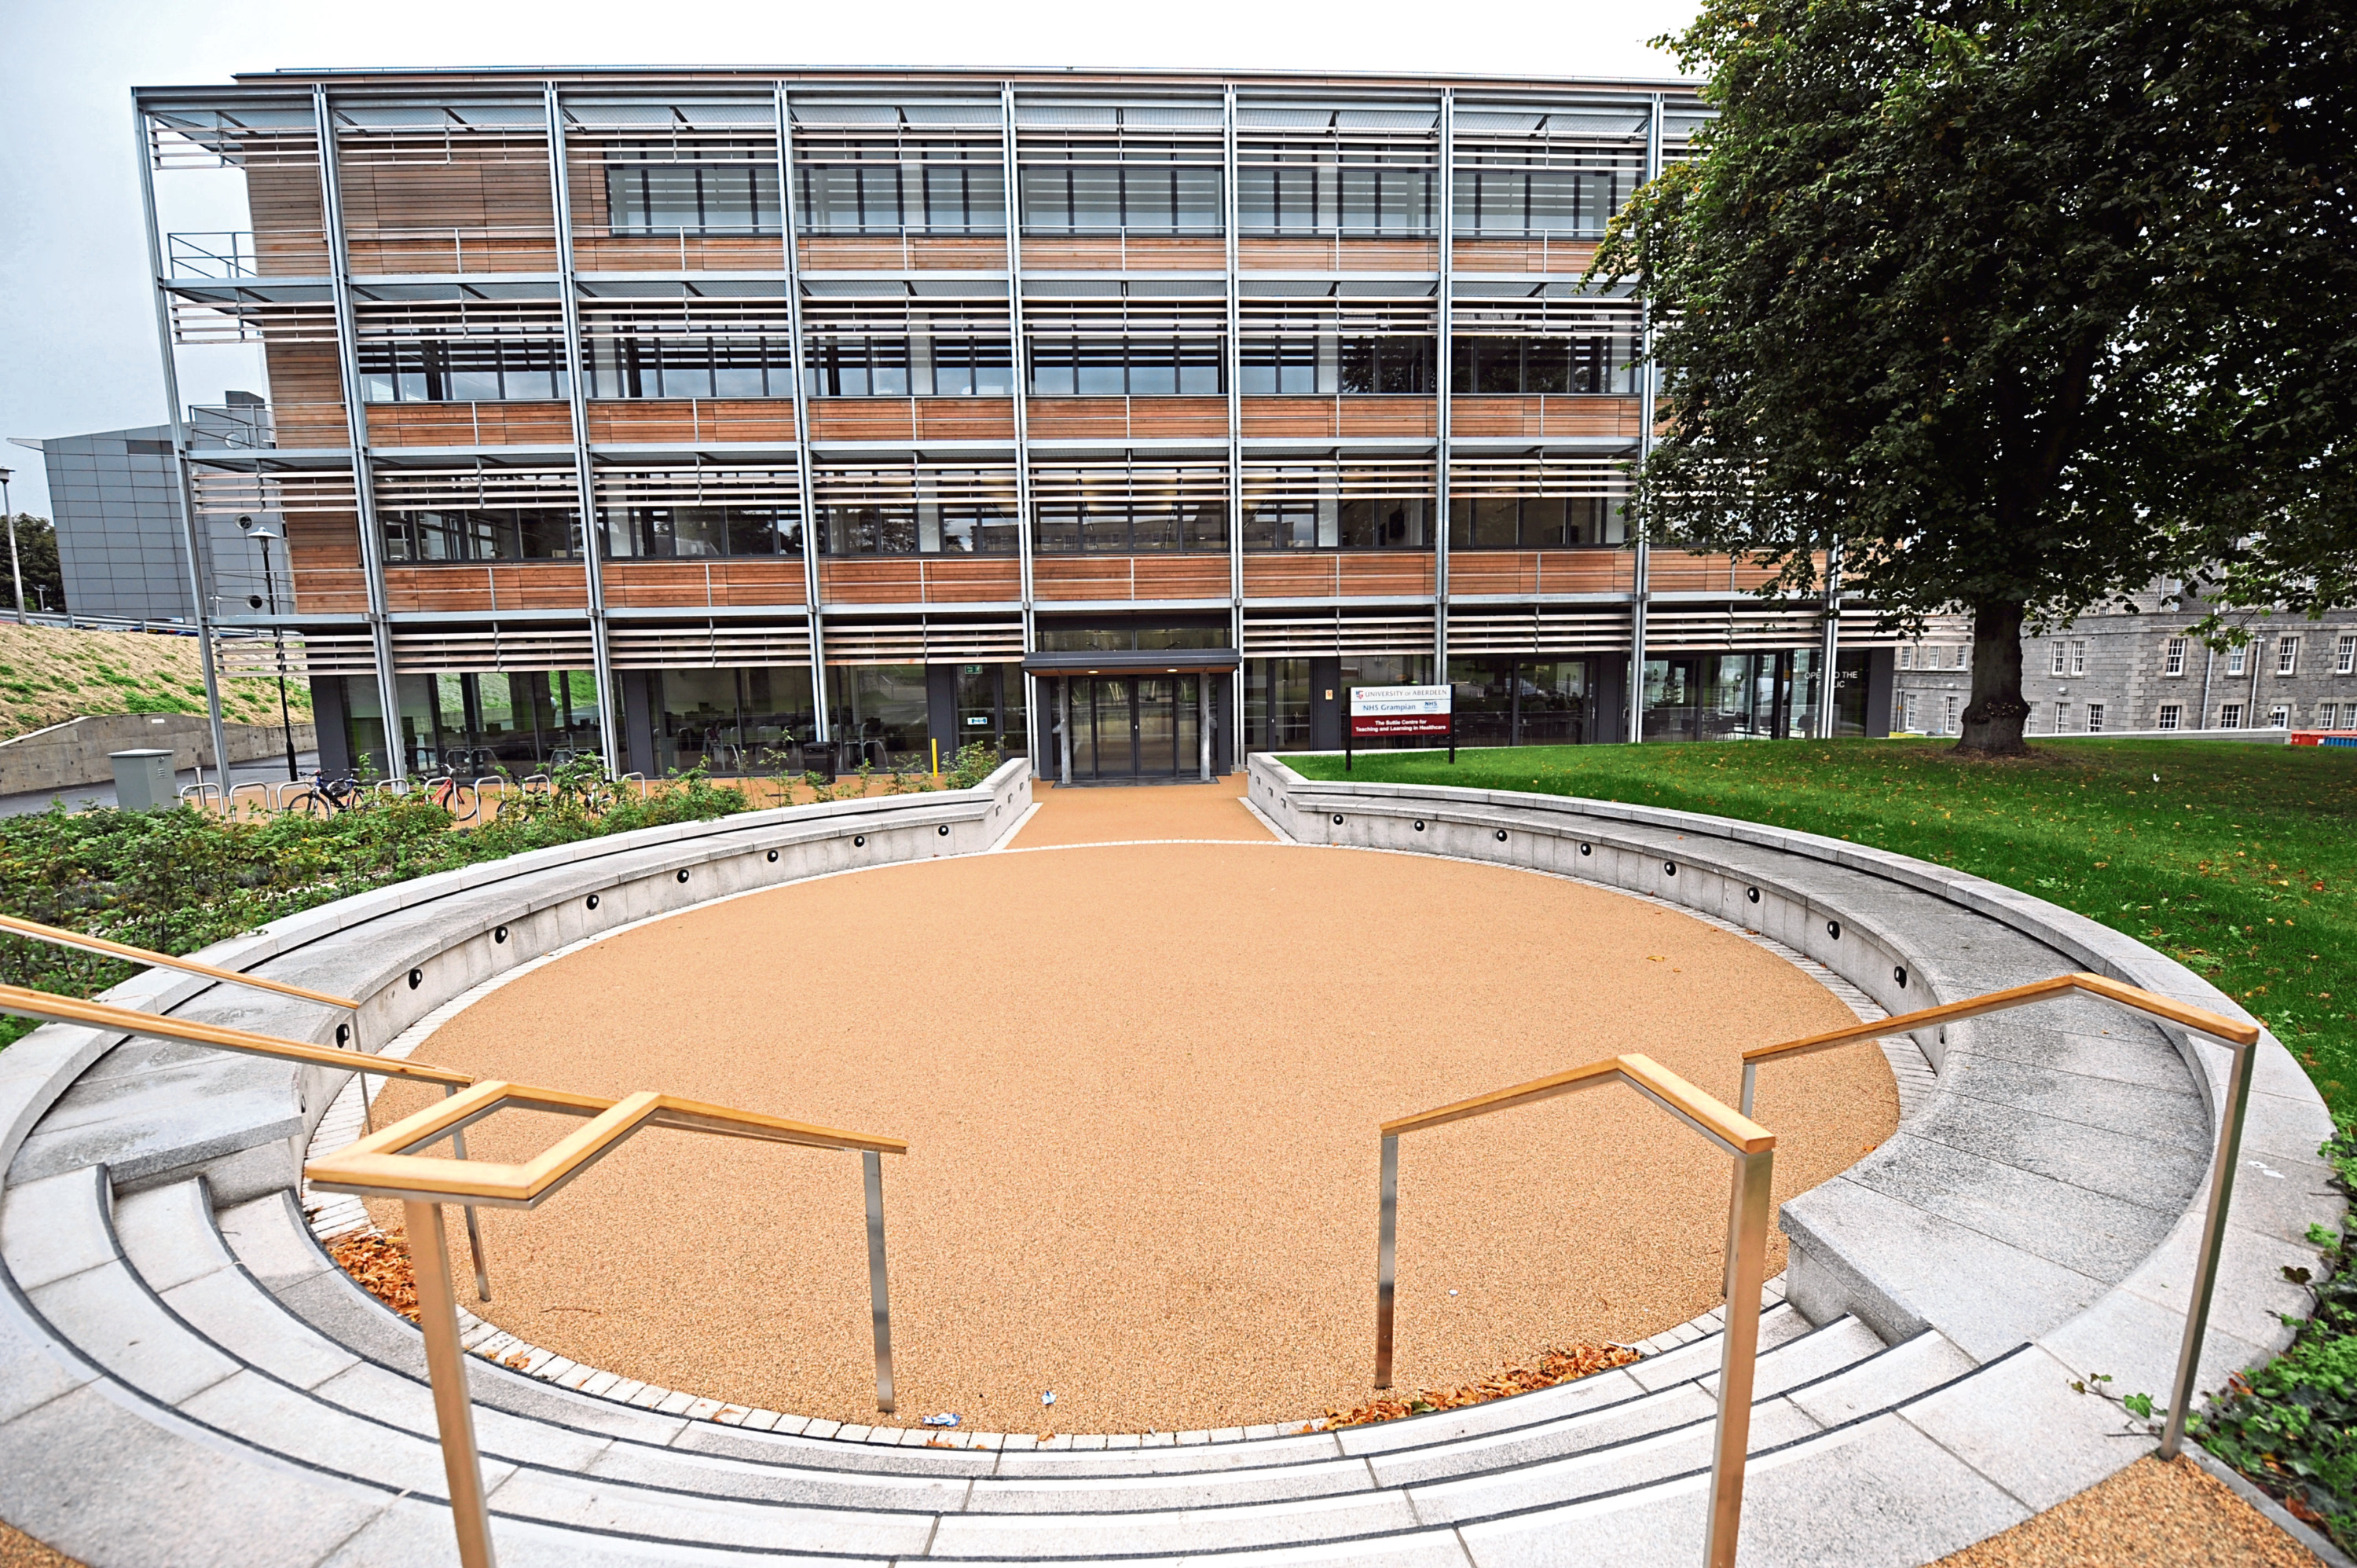 The Suttie Centre has been turned into a temporary centre for re-training NHS workers